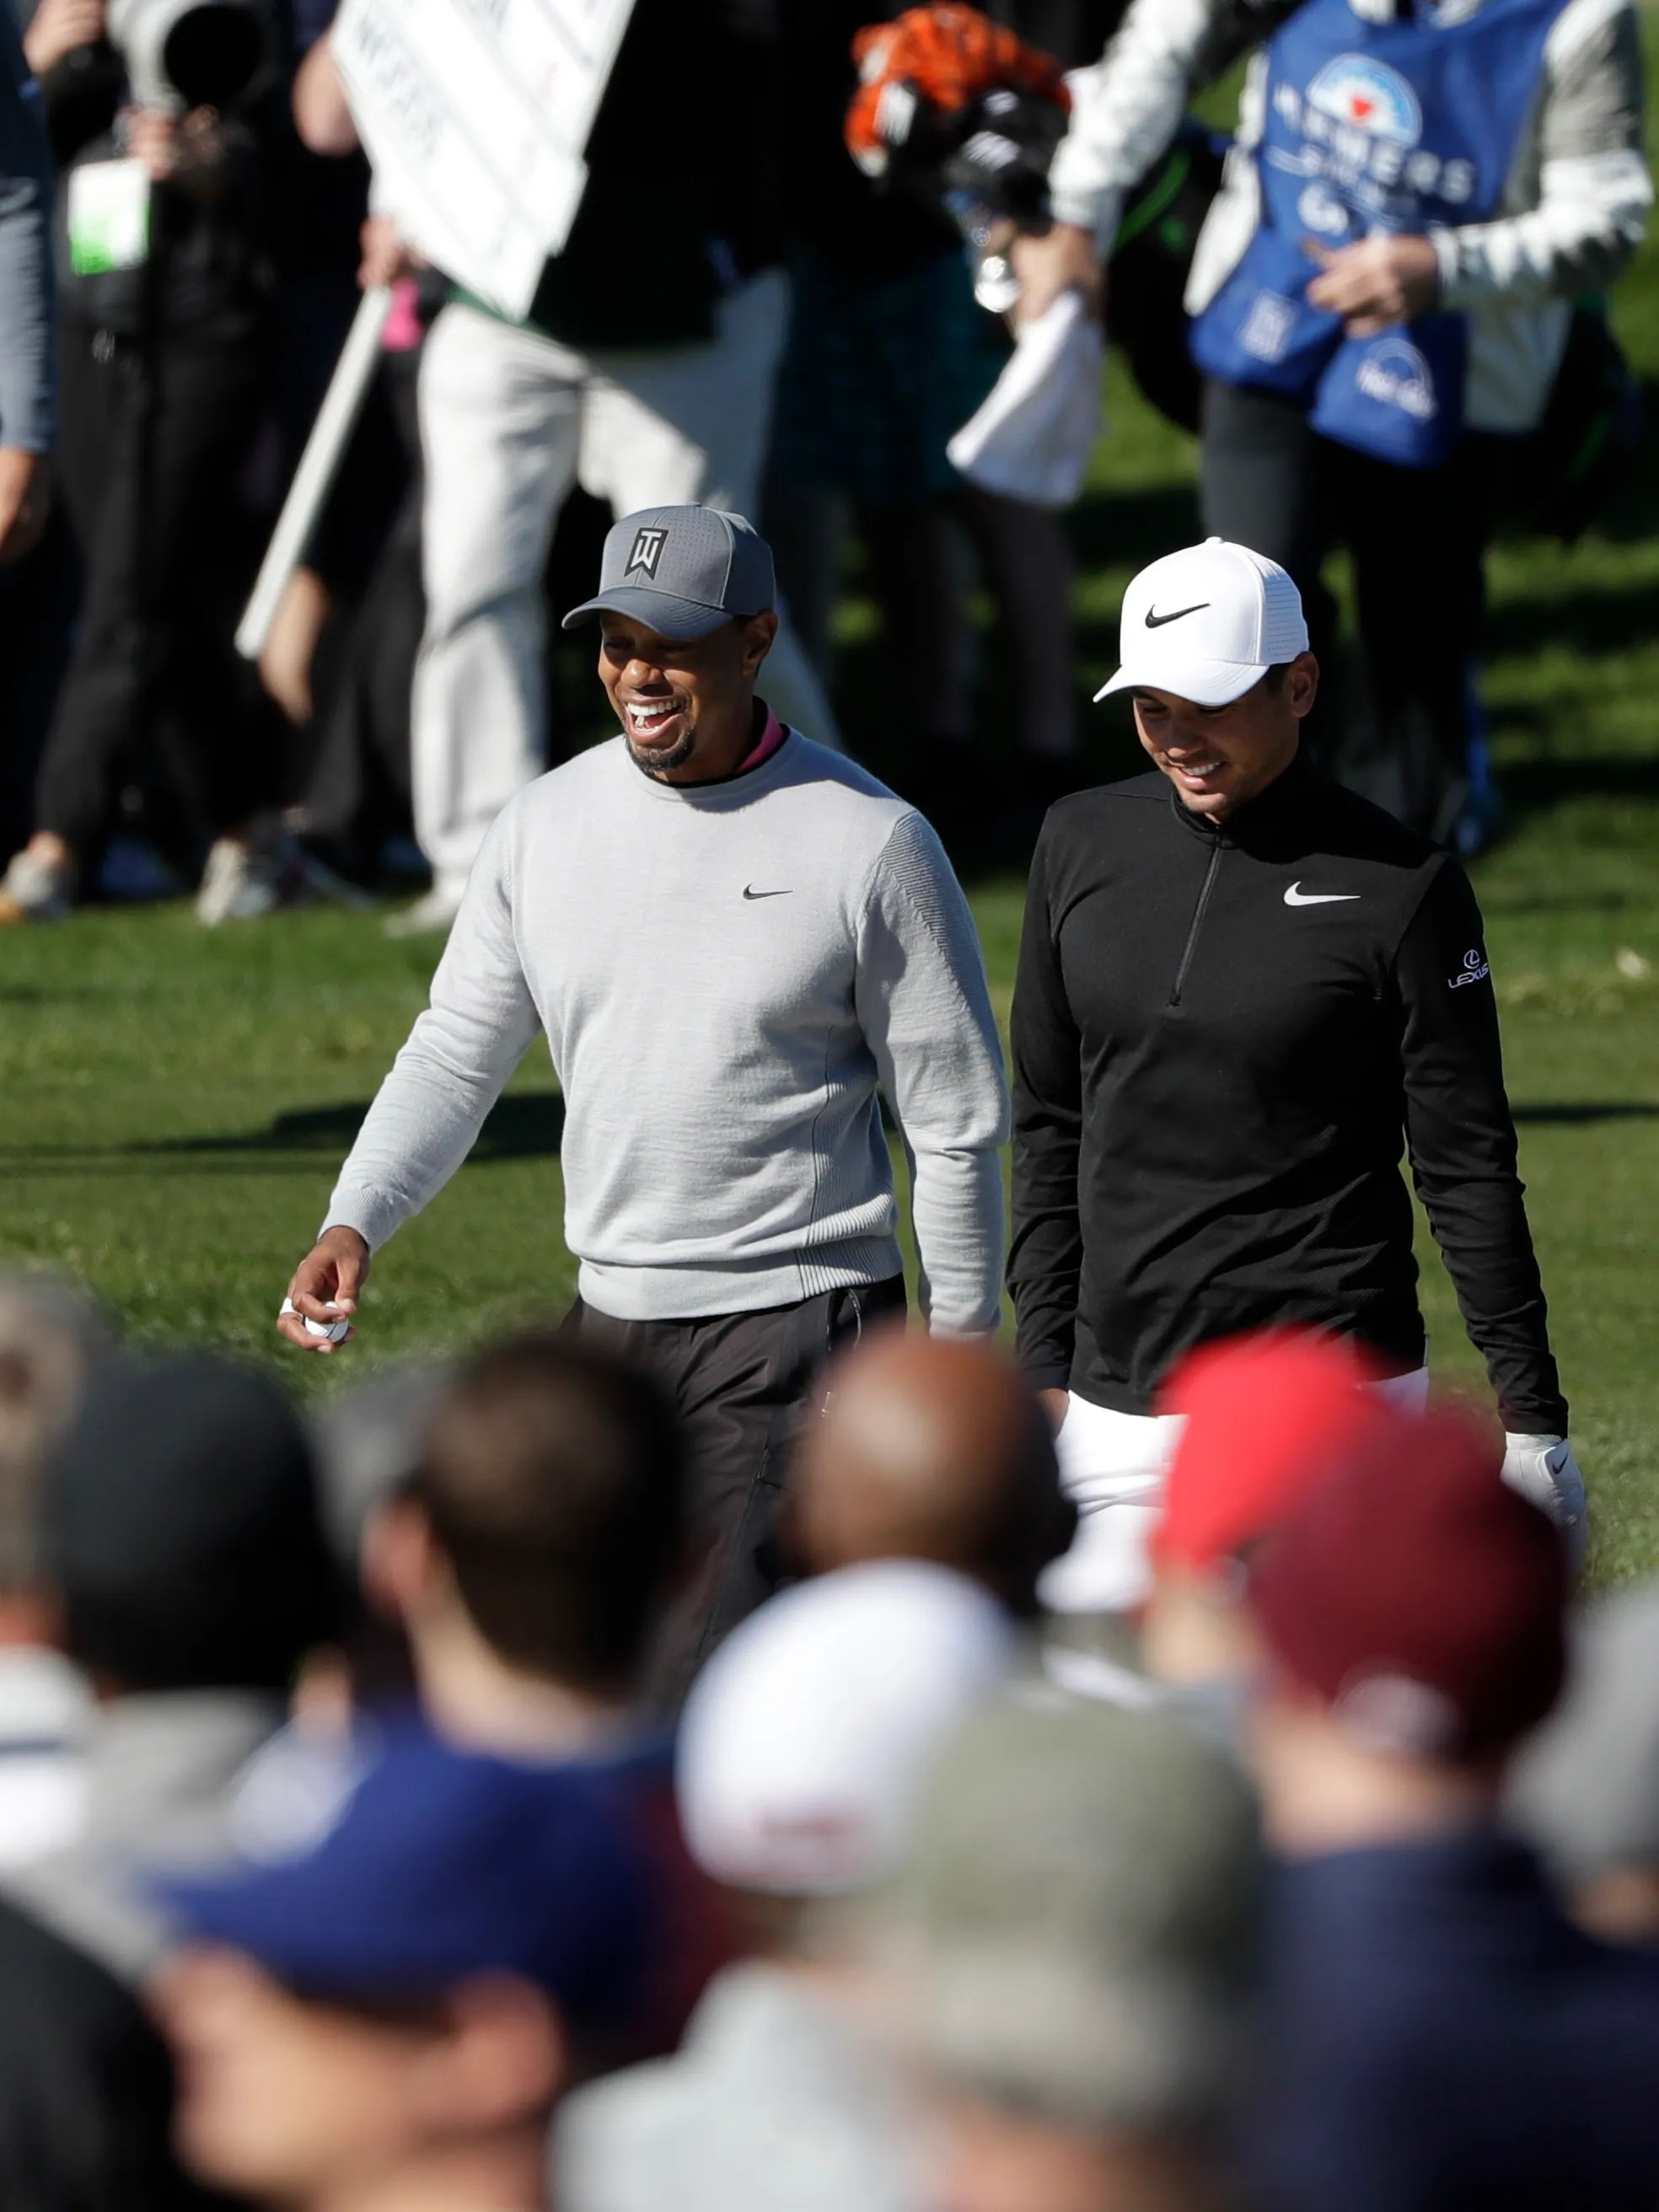 tiger woods today's tournament round 3